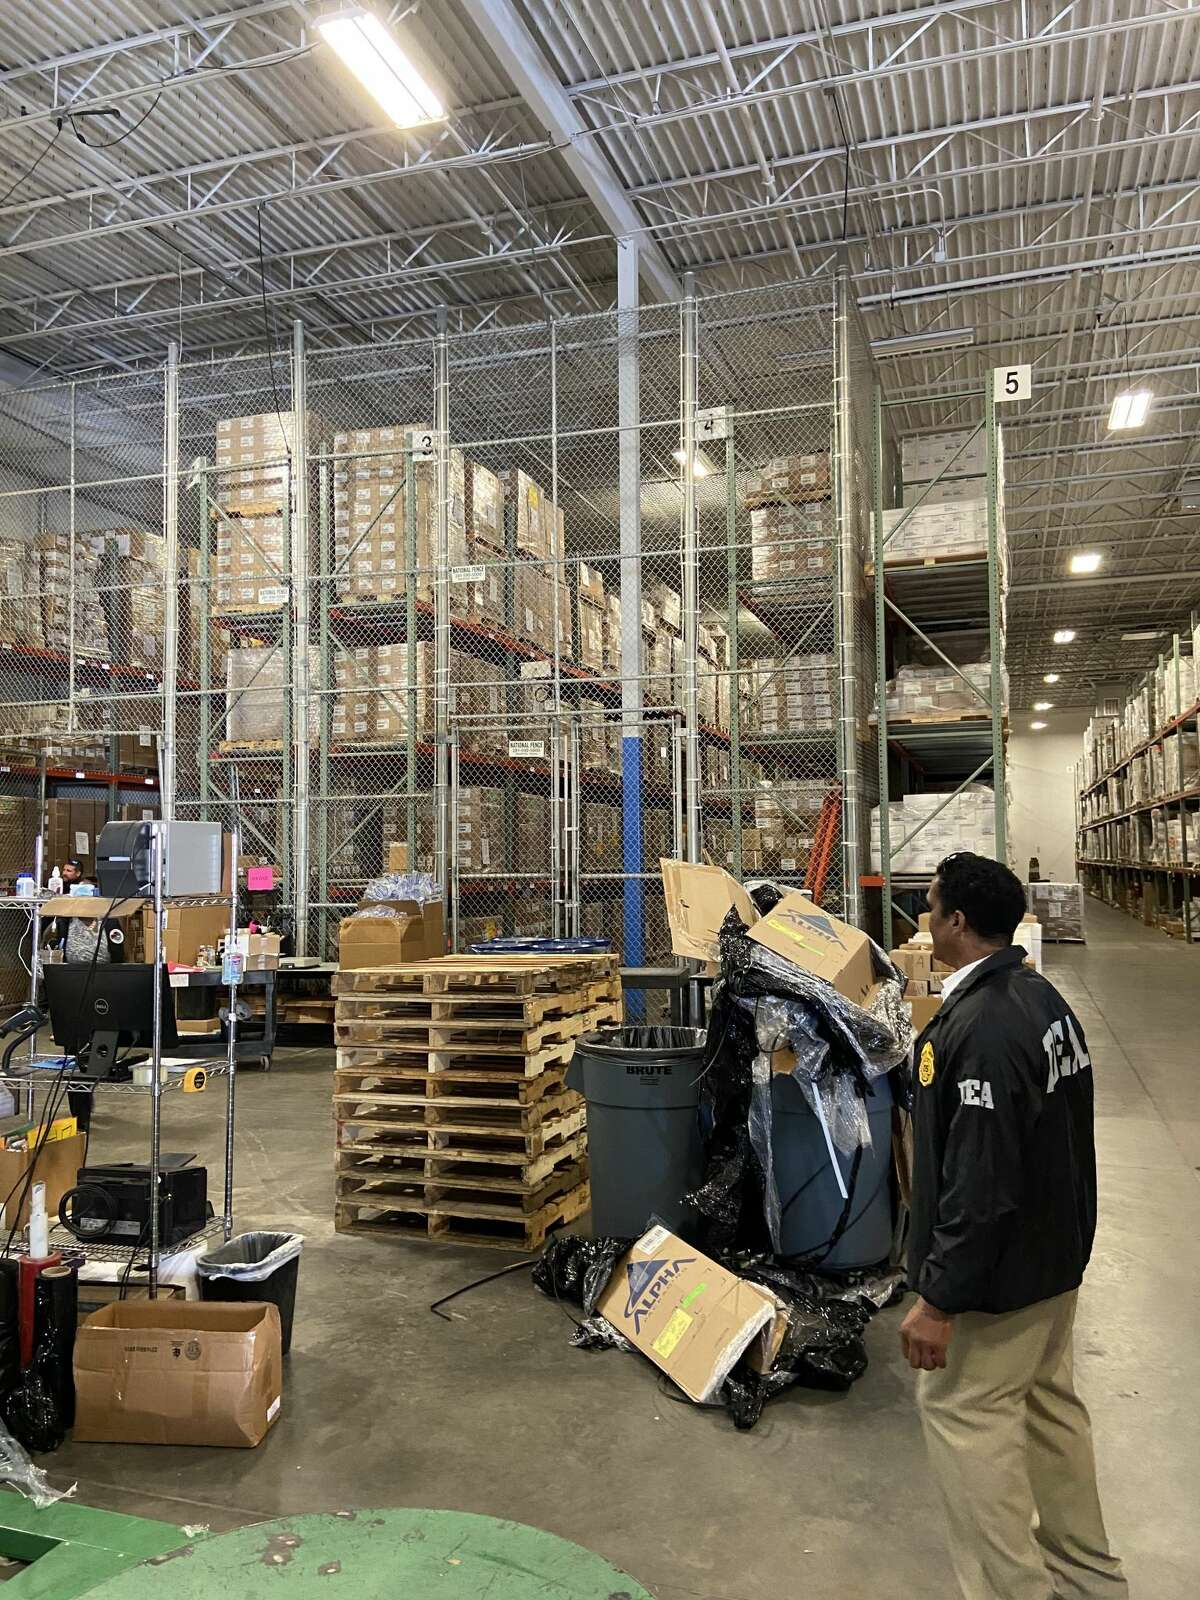 Houston DEA Associate Special Agent in Charge Antonio Hubbard looks over evidence removed from the Woodfield Distribution Center in Sugar Land during a seizure Wednesday, August 11.